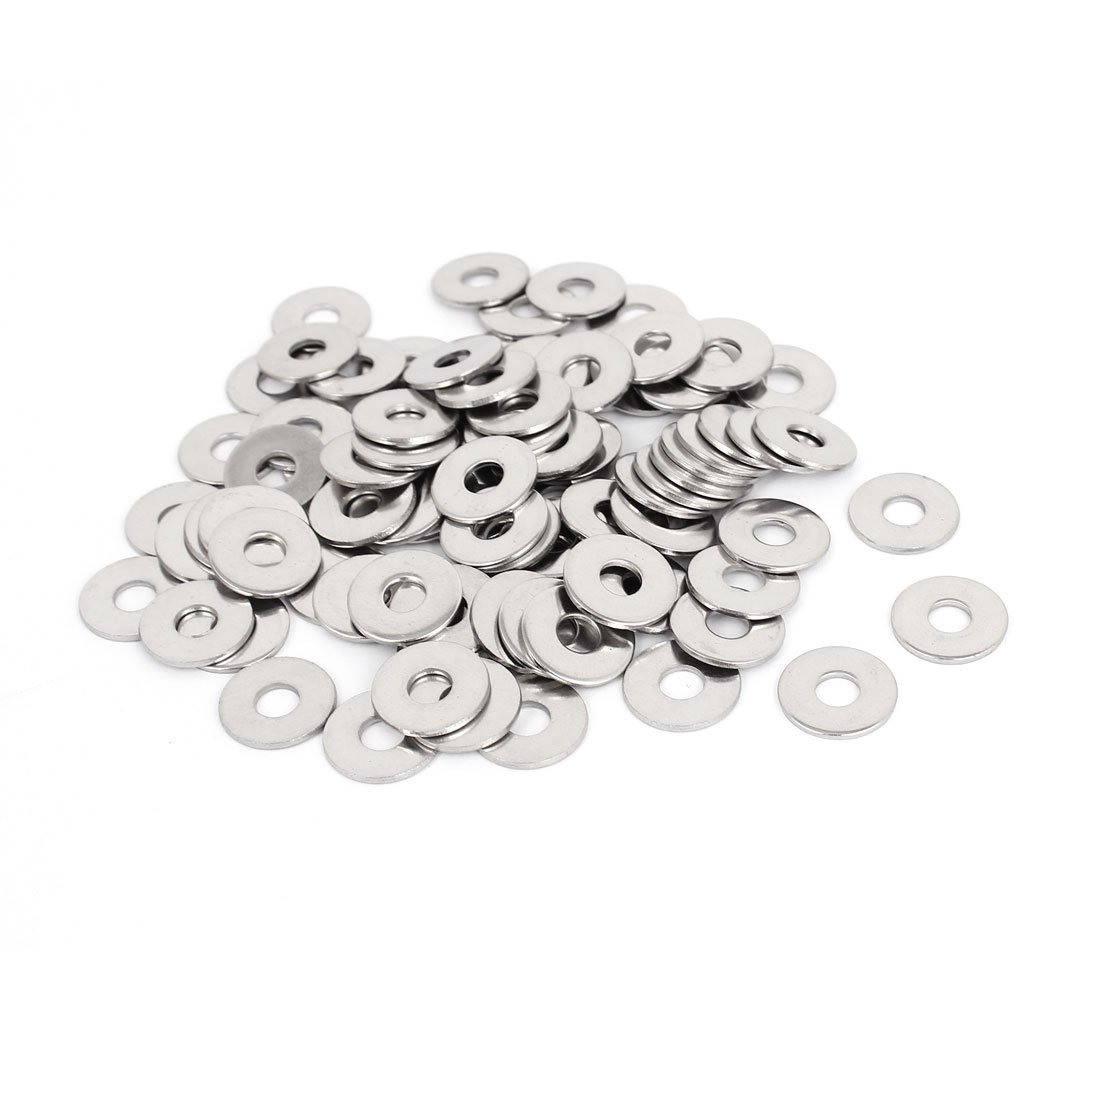 M6x18mmx1.5mm Stainless Steel Round Flat Washer for Bolt Screw 100Pcs